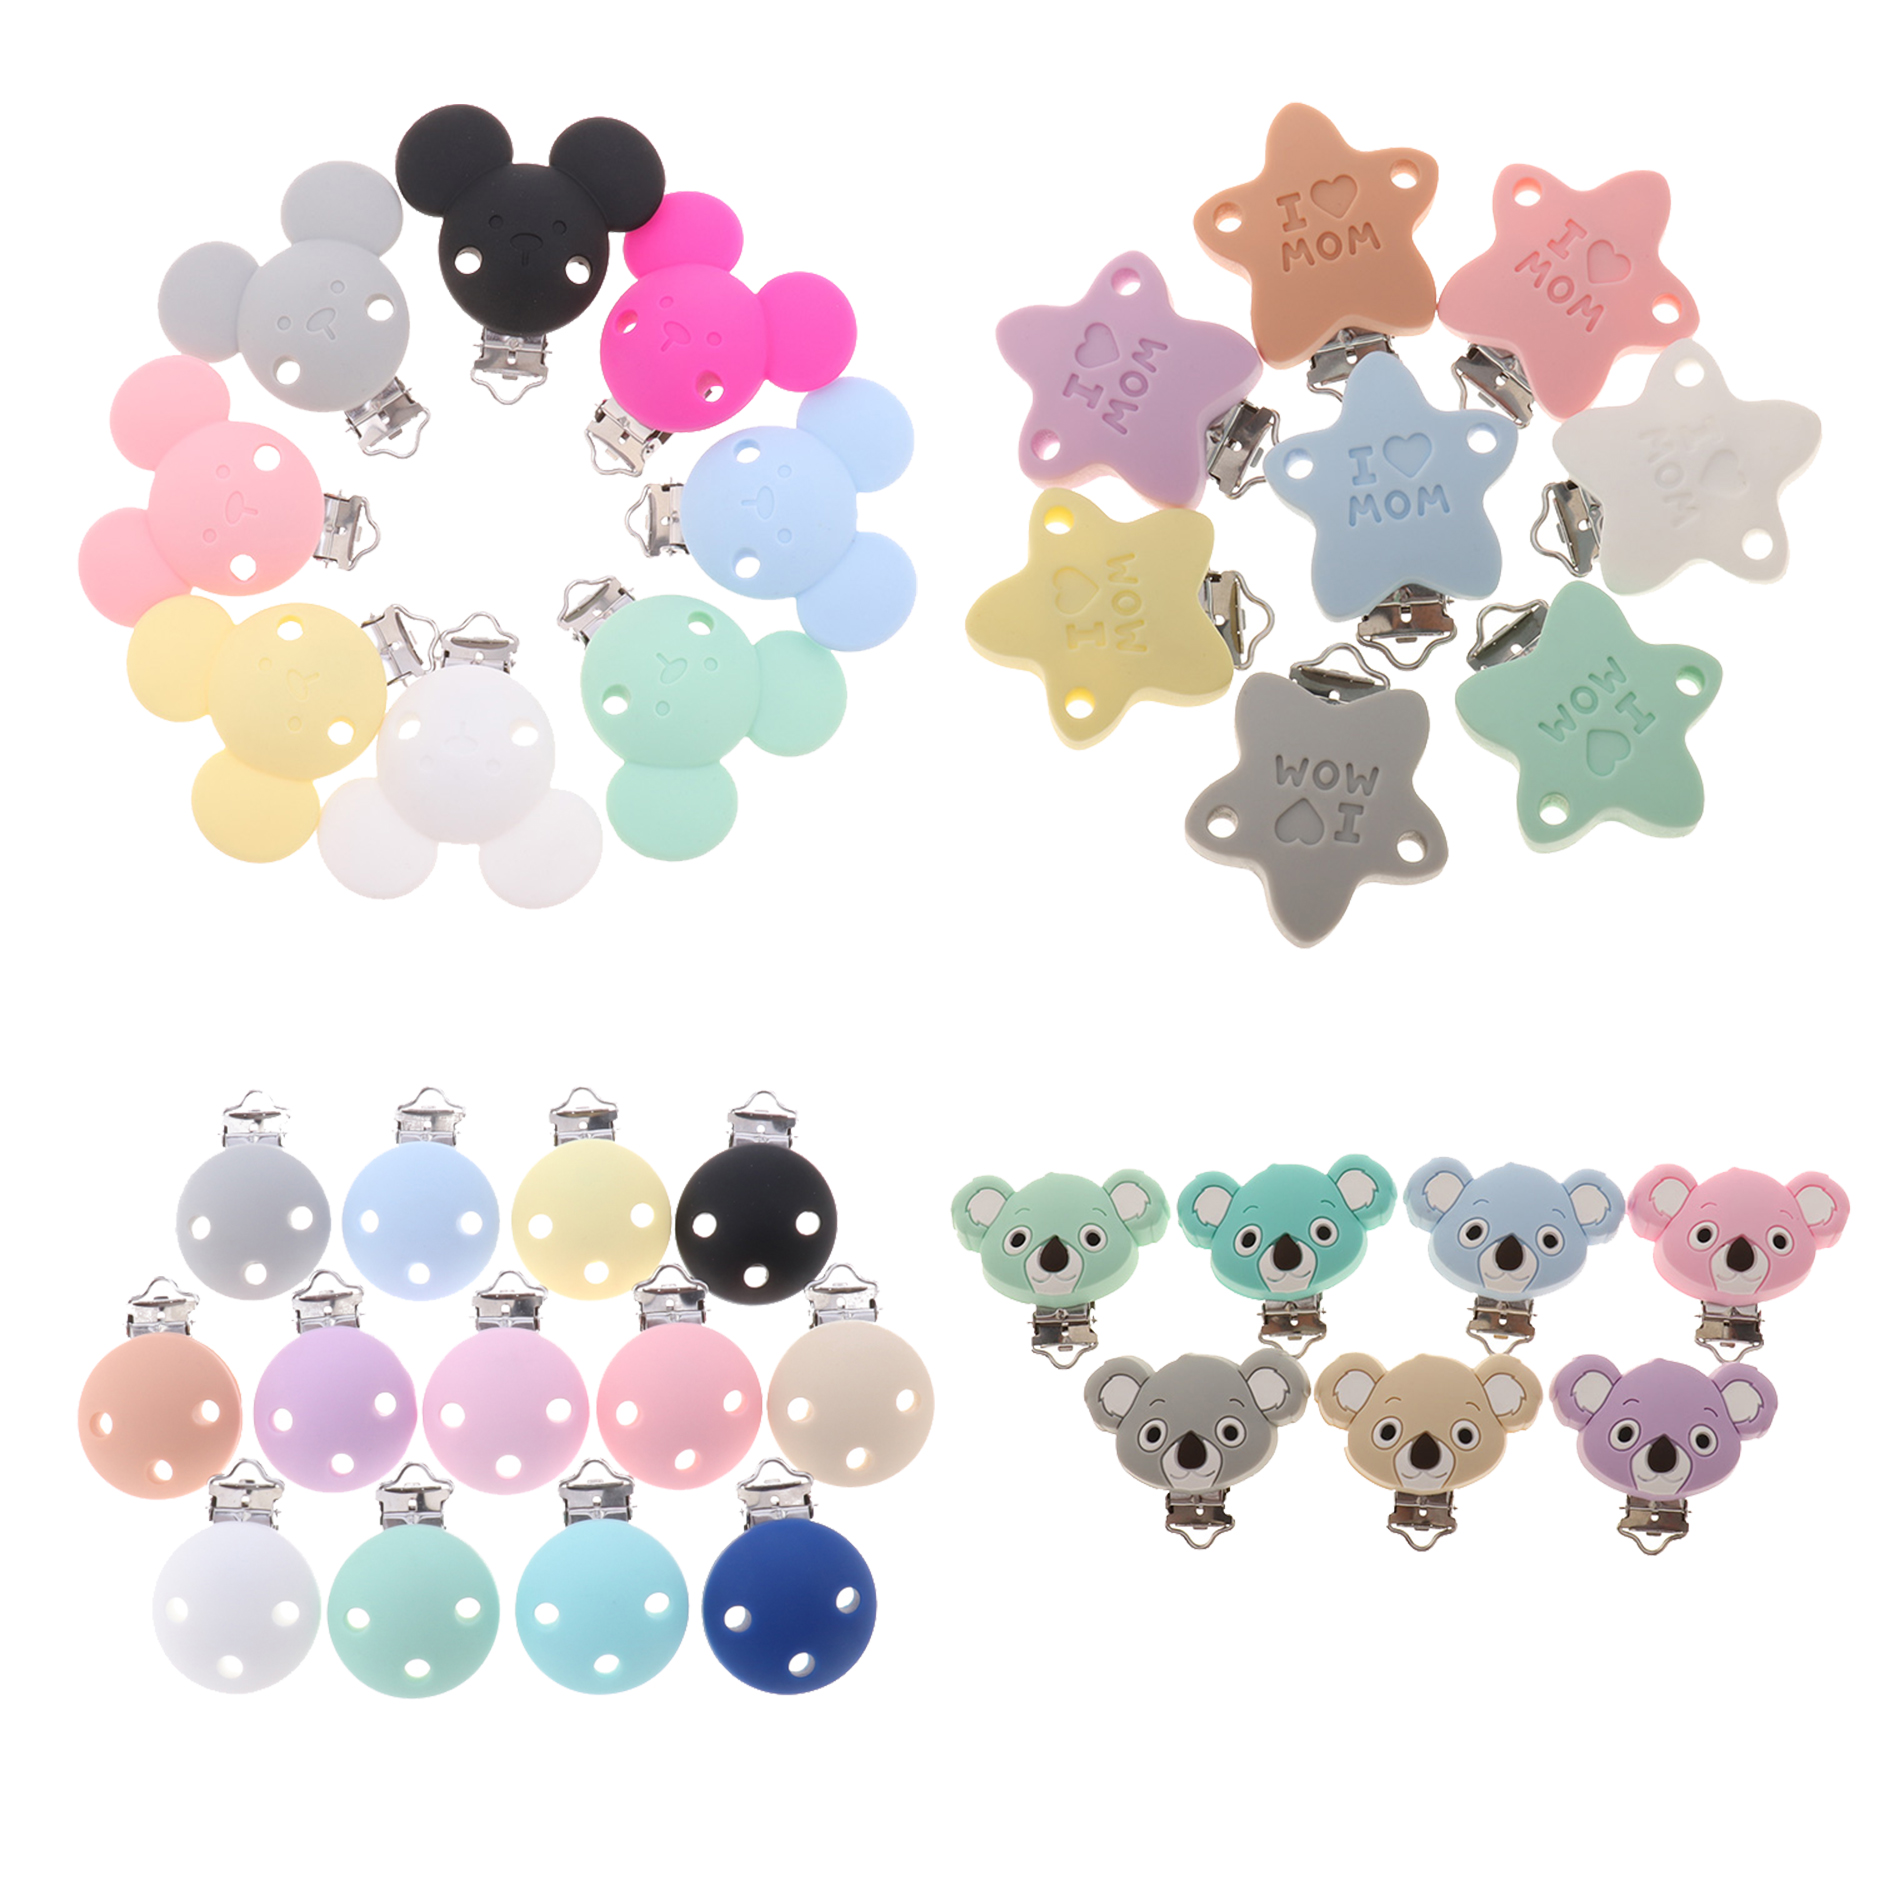 Fkisbox 2pcs Mouse Pacifier Clip Silicone Bead Baby Teether & Plastic Teething Accessories Nipple Clasps Toy DIY Round Koala